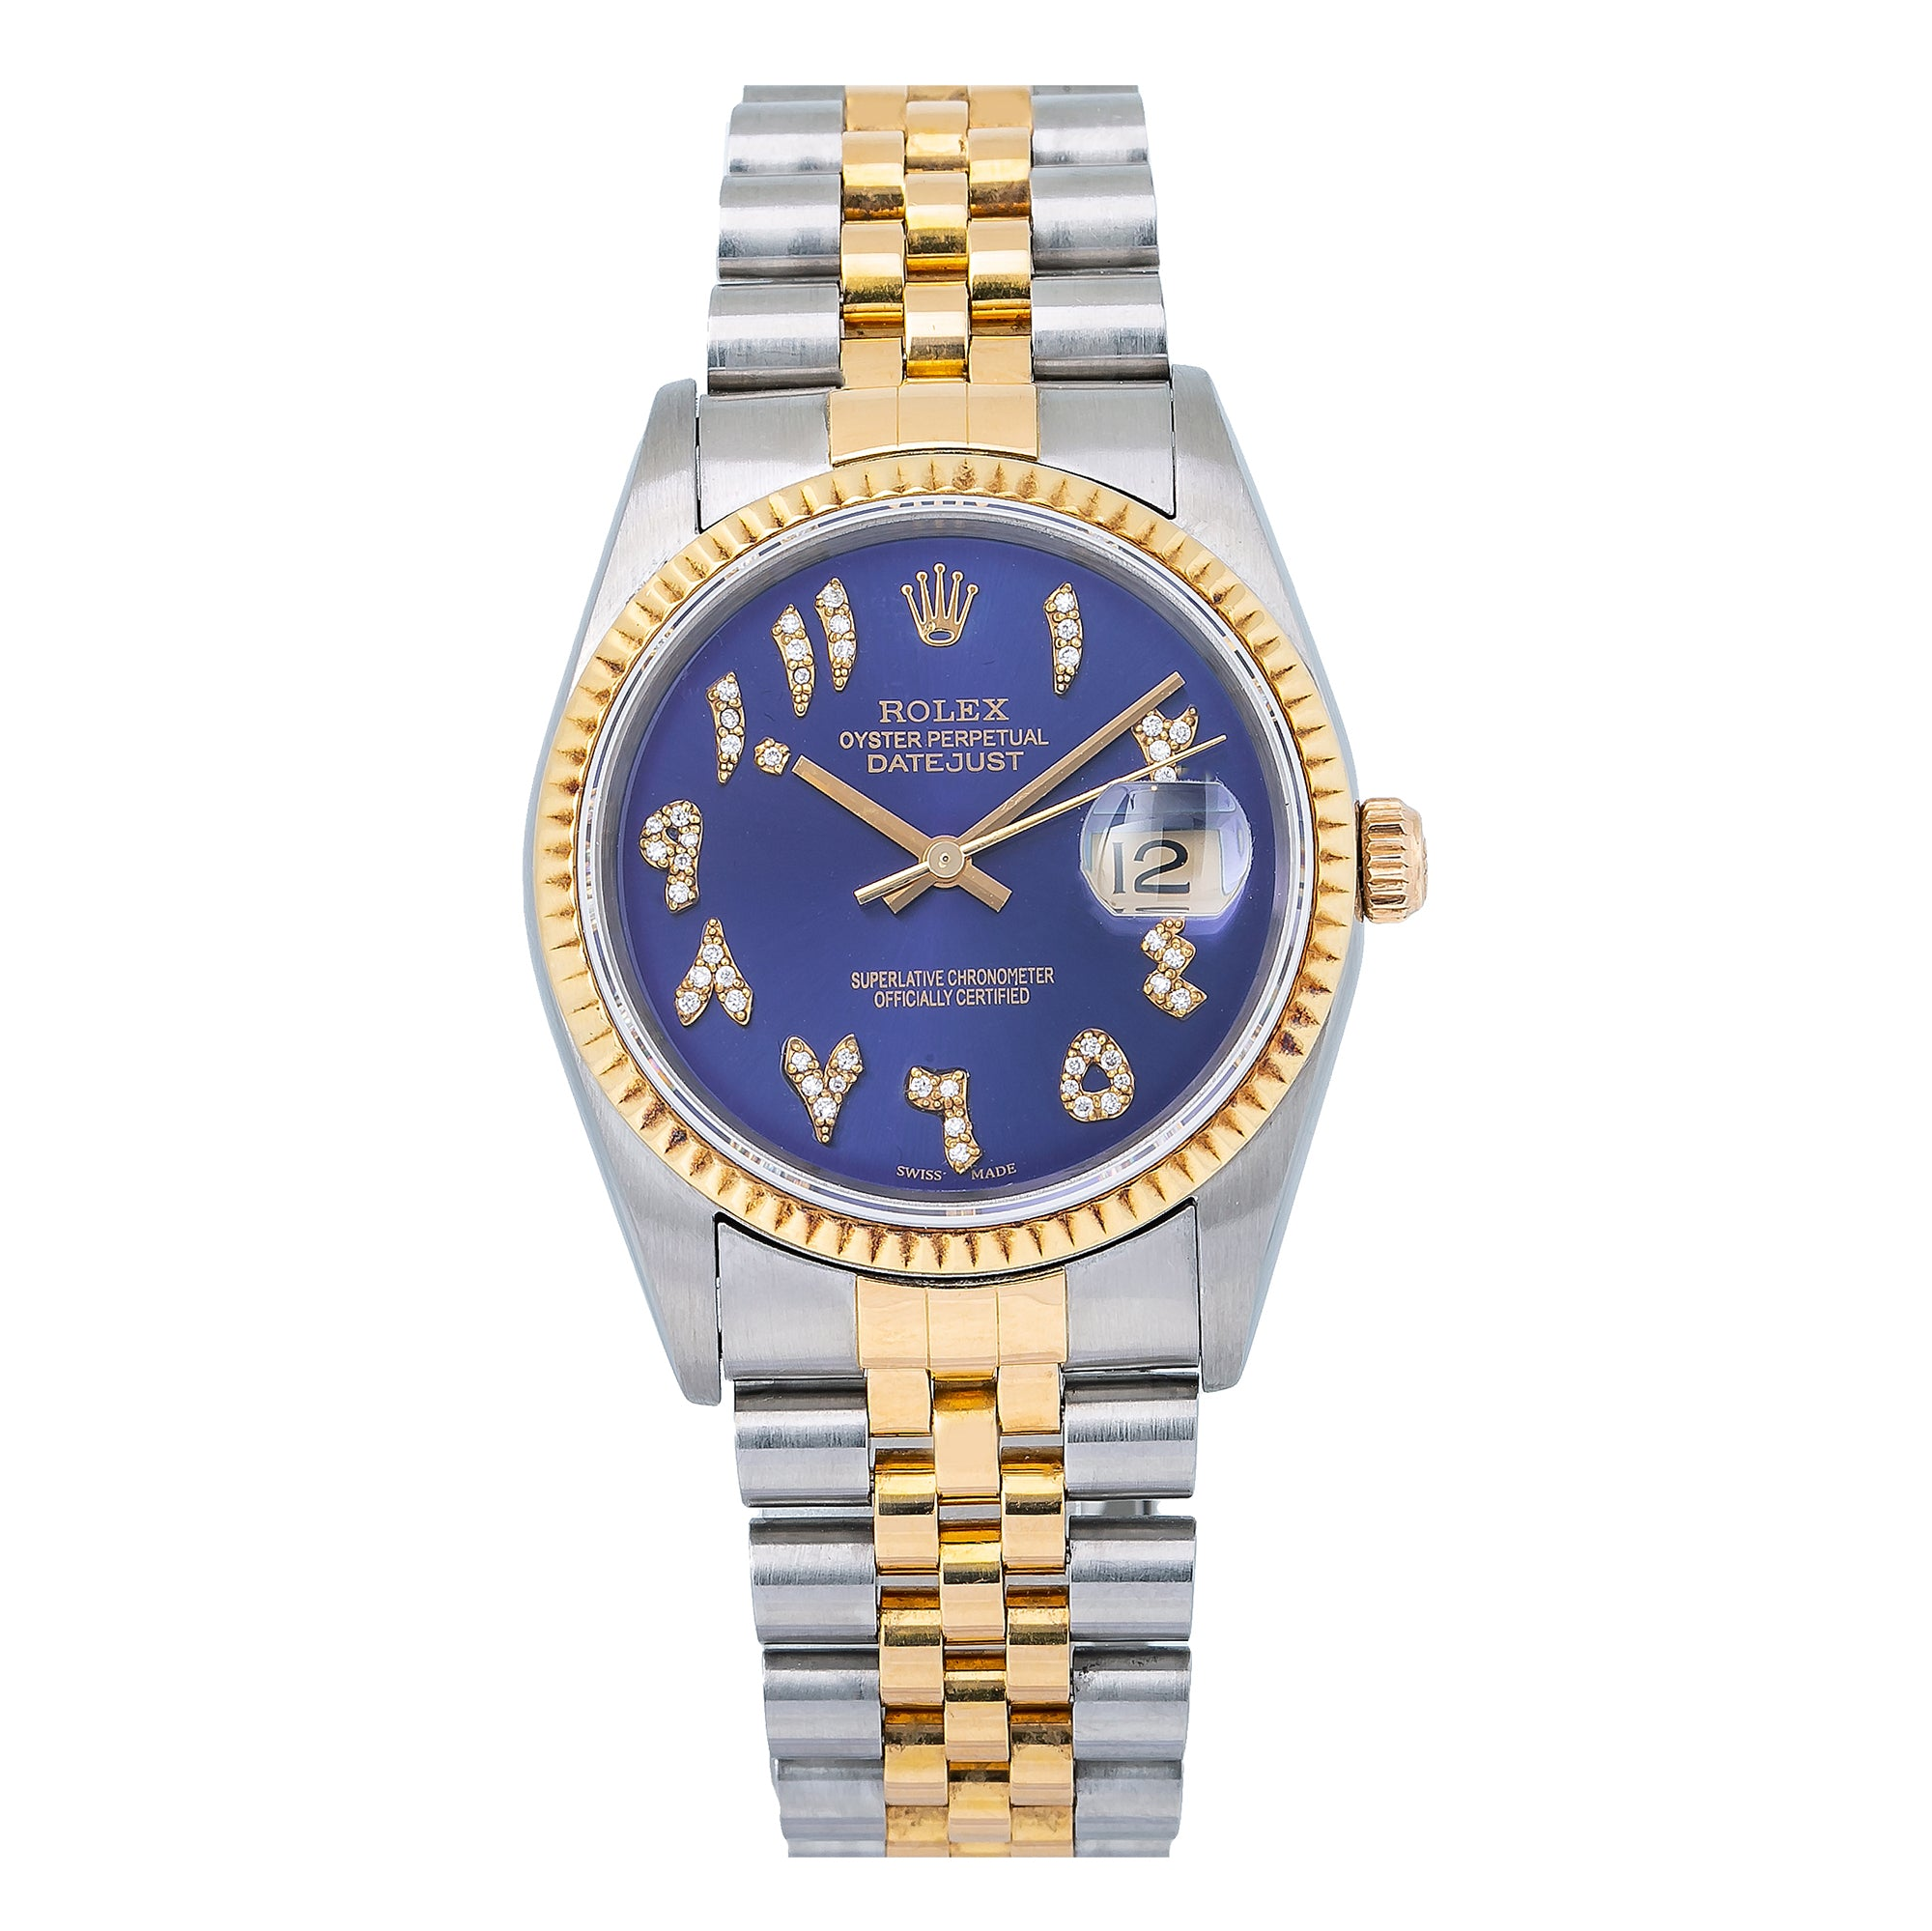 Rolex Datejust 16233 36MM Blue Diamond Dial With Two Tone Jubilee Bracelet